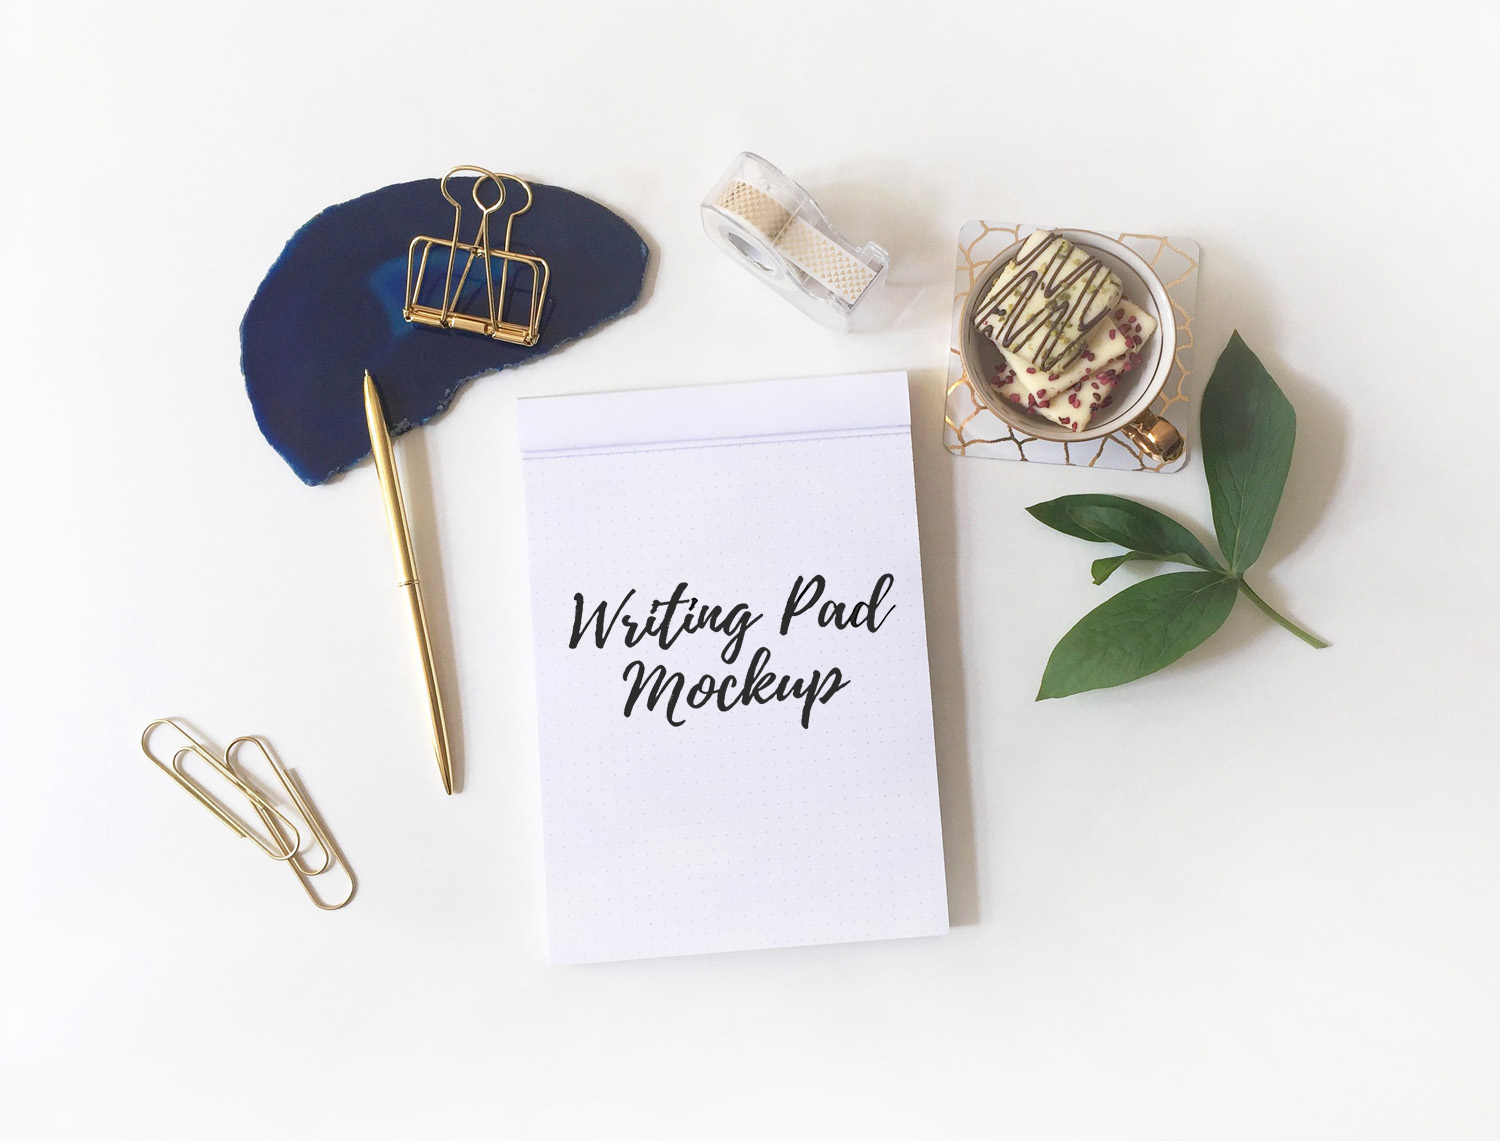 Free Writing Pad on Desk Mockup